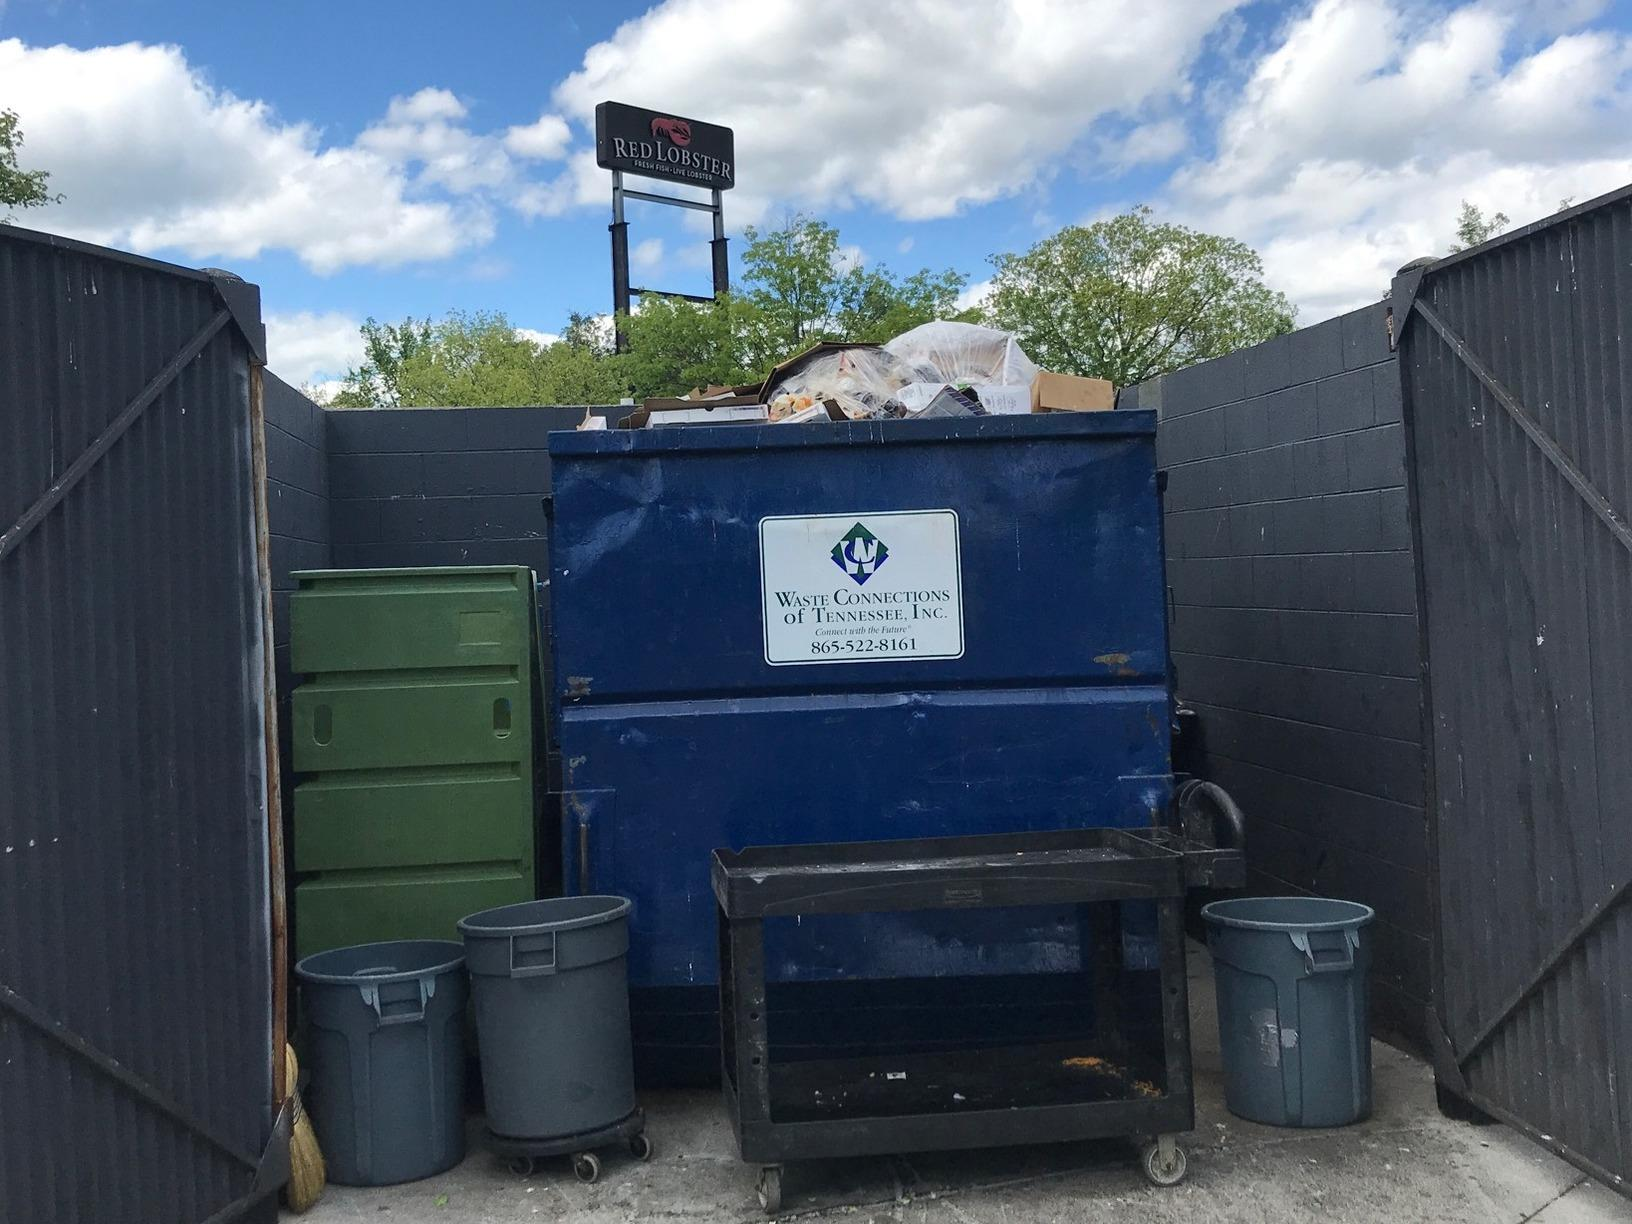 Popular Restaurant Has Junk Problem in Knoxville, TN - After Photo